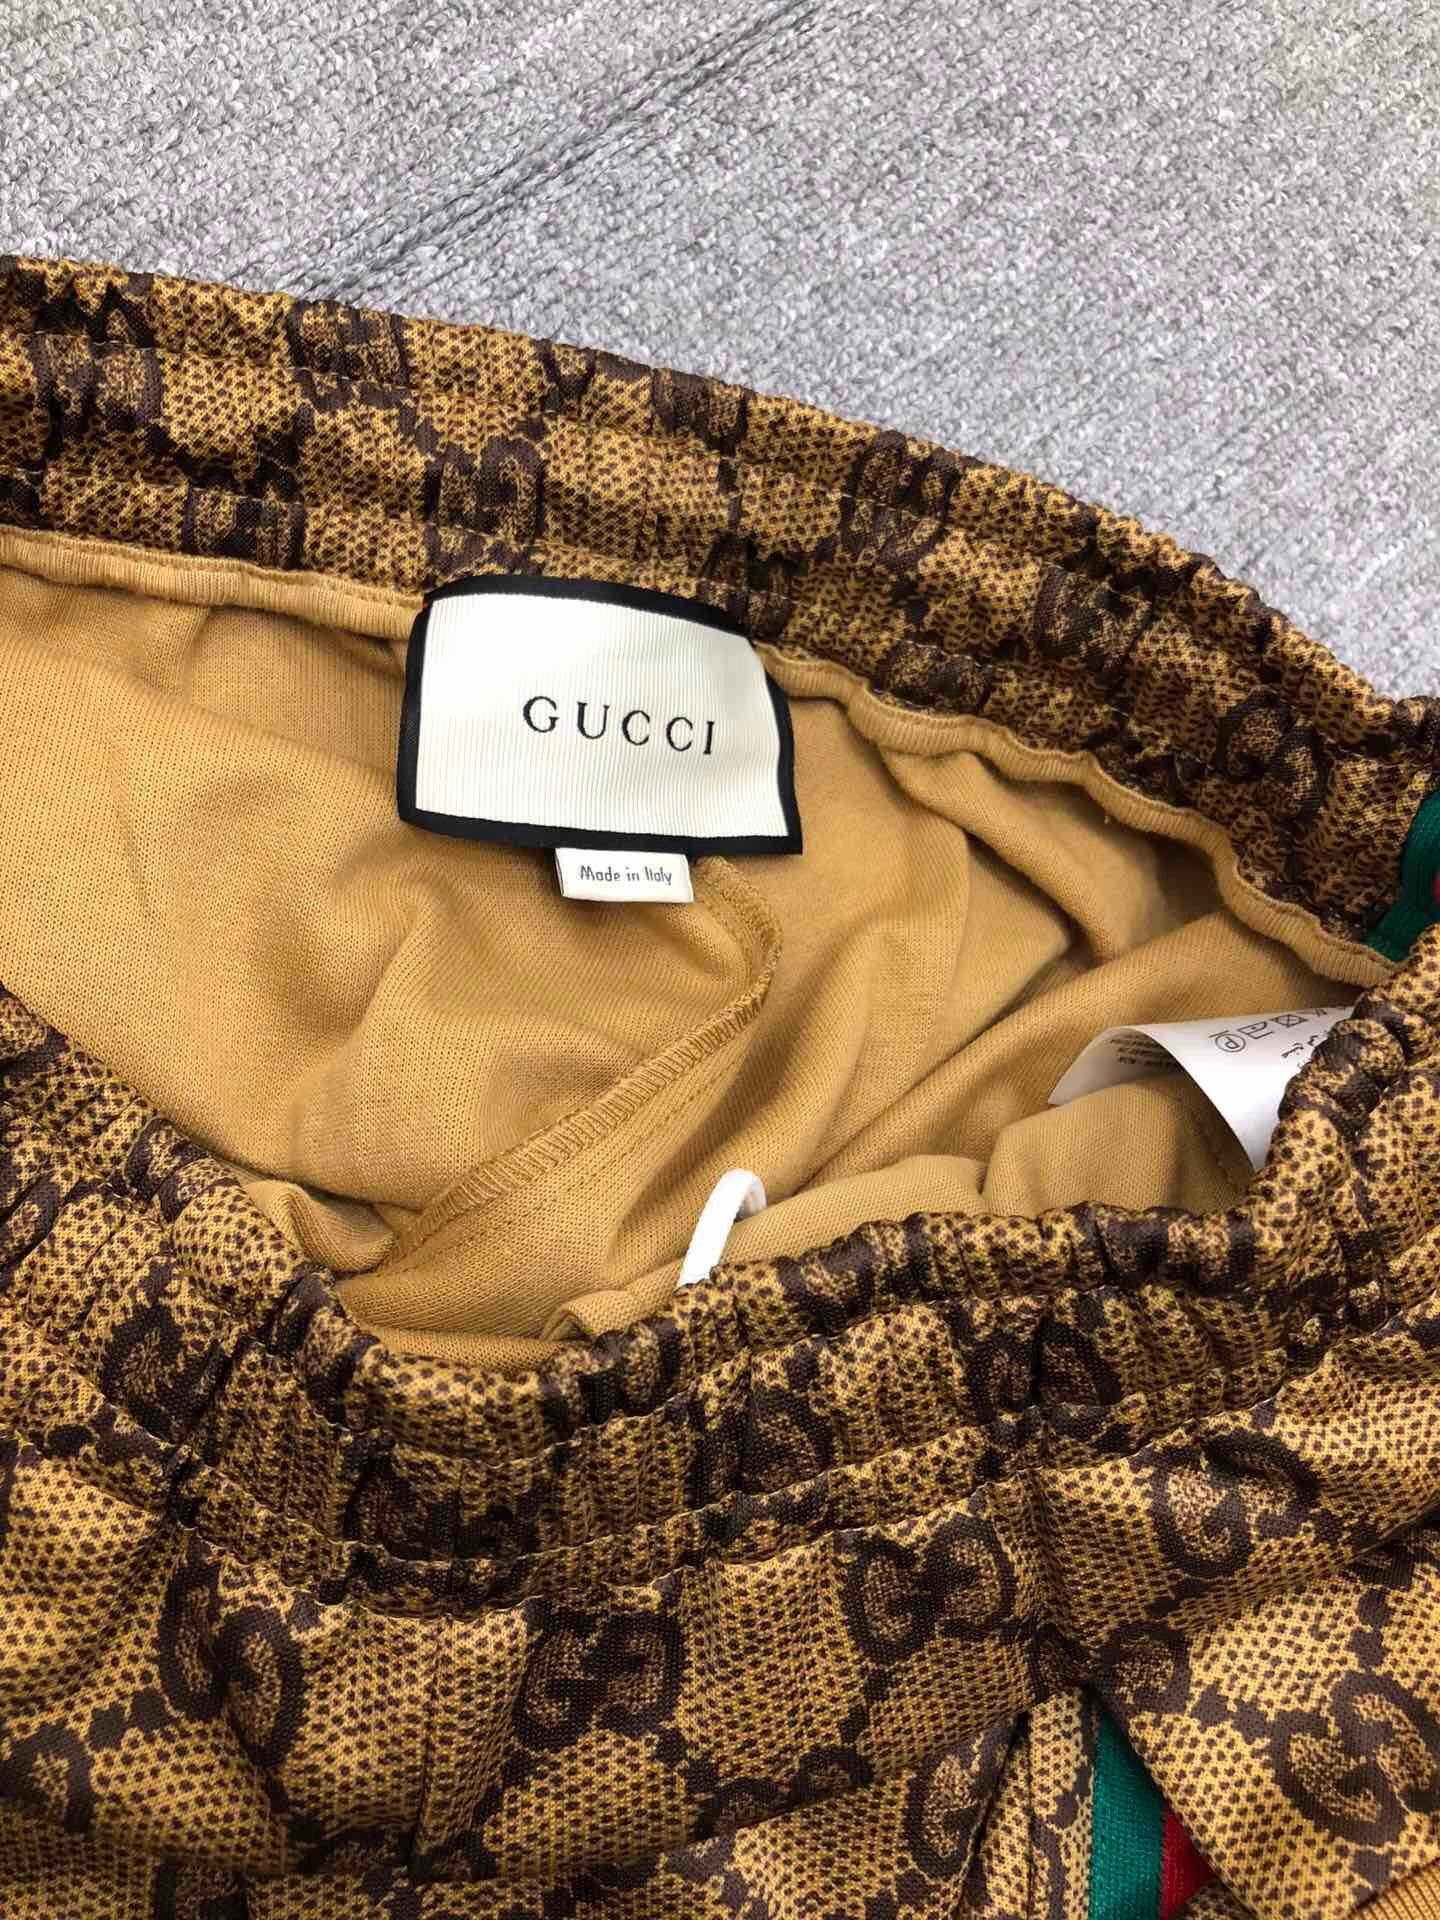 227b375e9d8ee Gucci GG technical jersey jogging pant – SUPBOXLAB